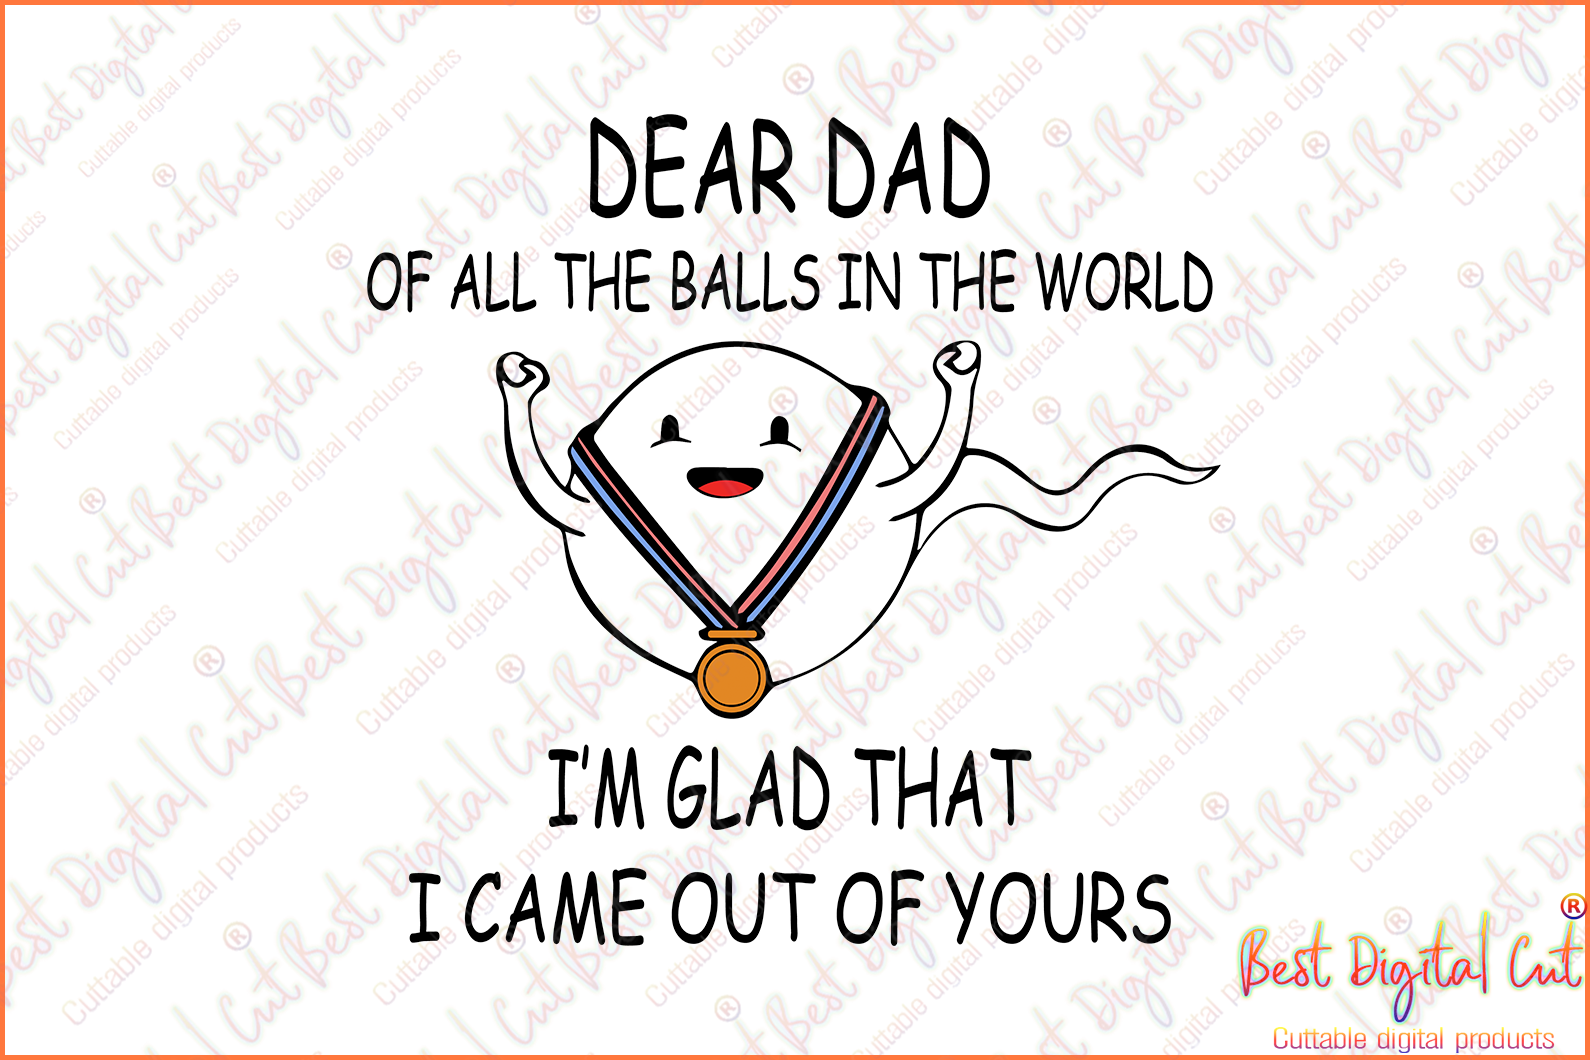 Dear Dad of all the balls in the world,appy father's day,father's day svg,new dad svg,dad clipart,love father,father gift,fathers day shirt, gift for father,happy fathers day gift,daddy svg,love daddy, best daddy ever, best daddy, best gift,hero svg